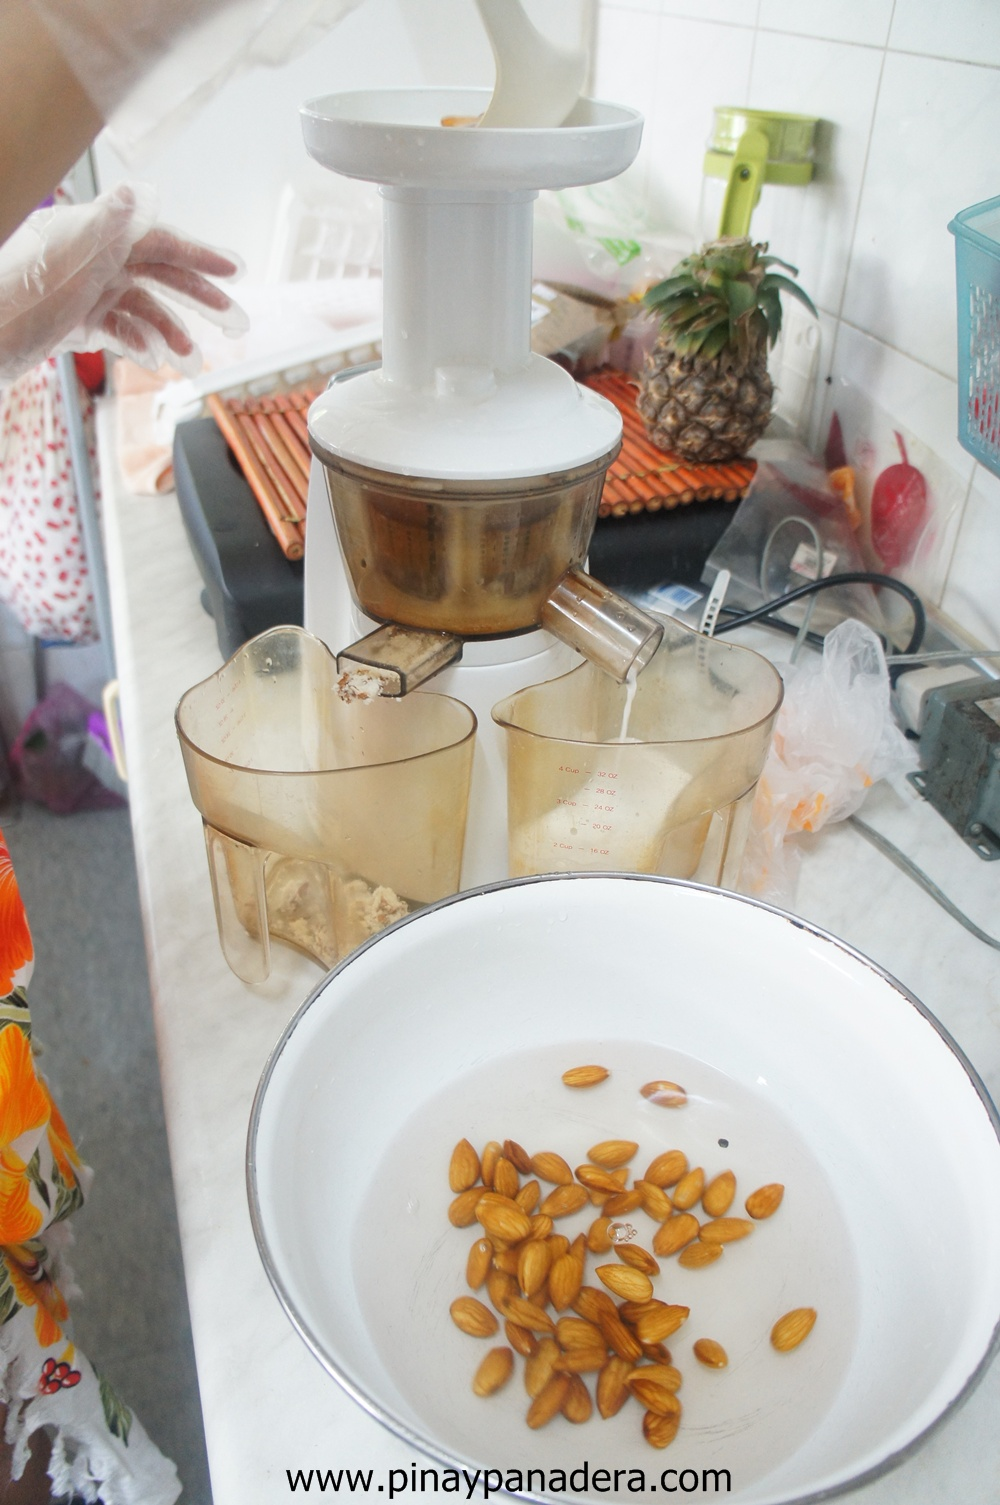 Almond Milk In Slow Juicer : Pinay Panadera s Culinary Adventures: Kath s Nutritious Homemade Almond Milk